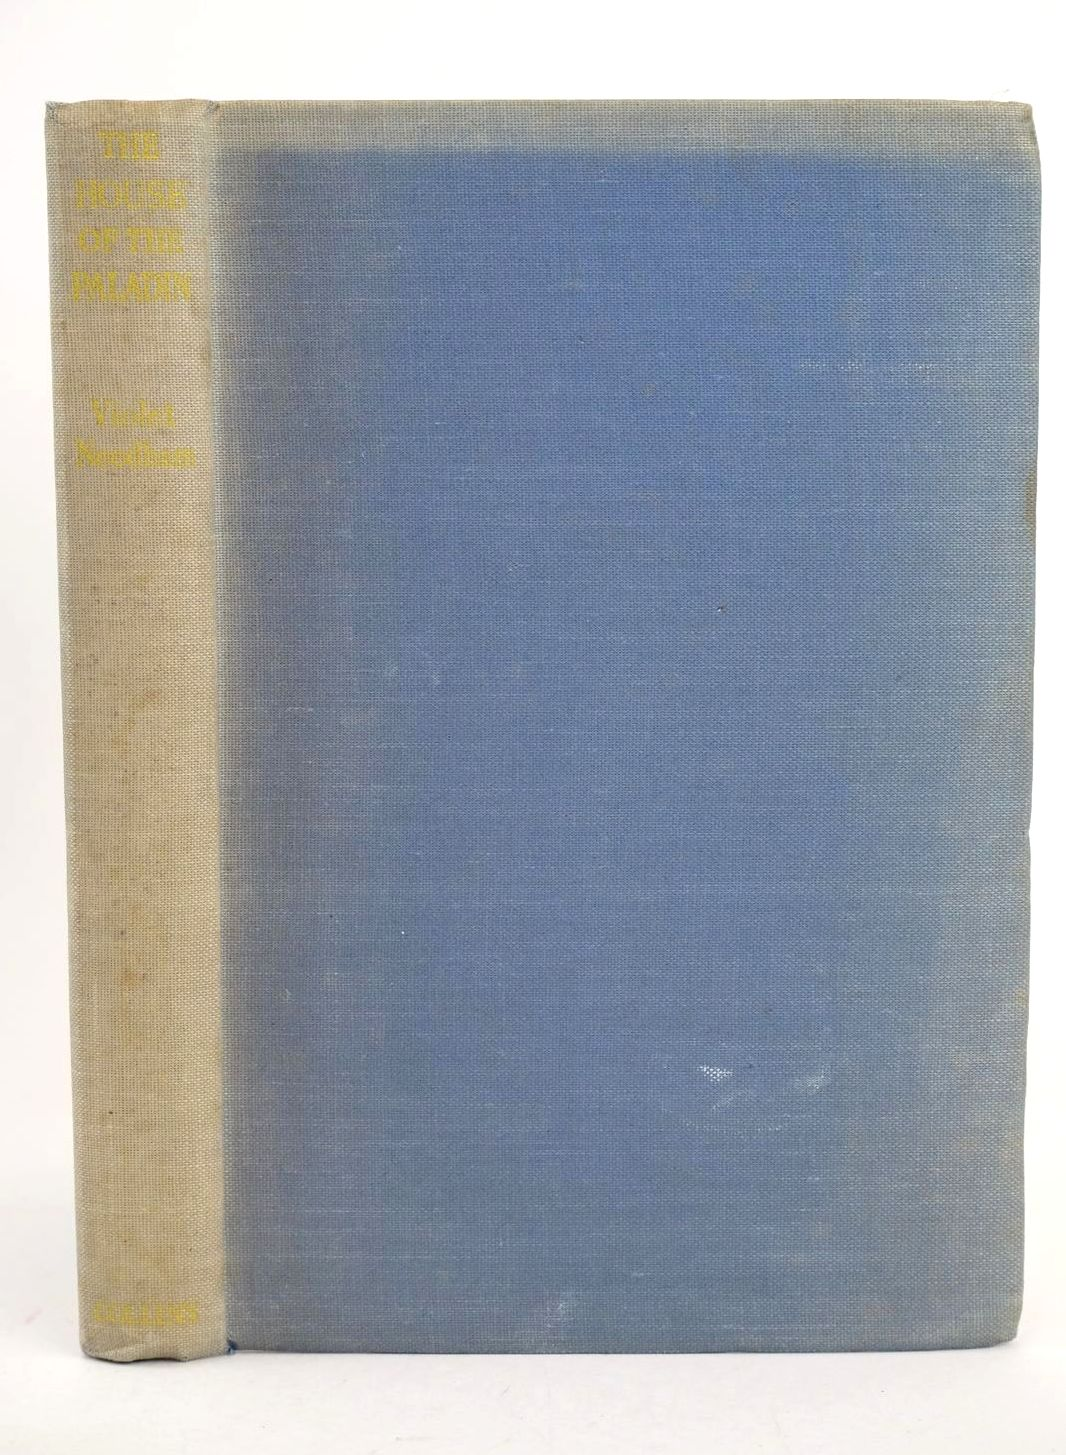 Photo of THE HOUSE OF THE PALADIN written by Needham, Violet illustrated by Bruce, Joyce published by Collins (STOCK CODE: 1318712)  for sale by Stella & Rose's Books